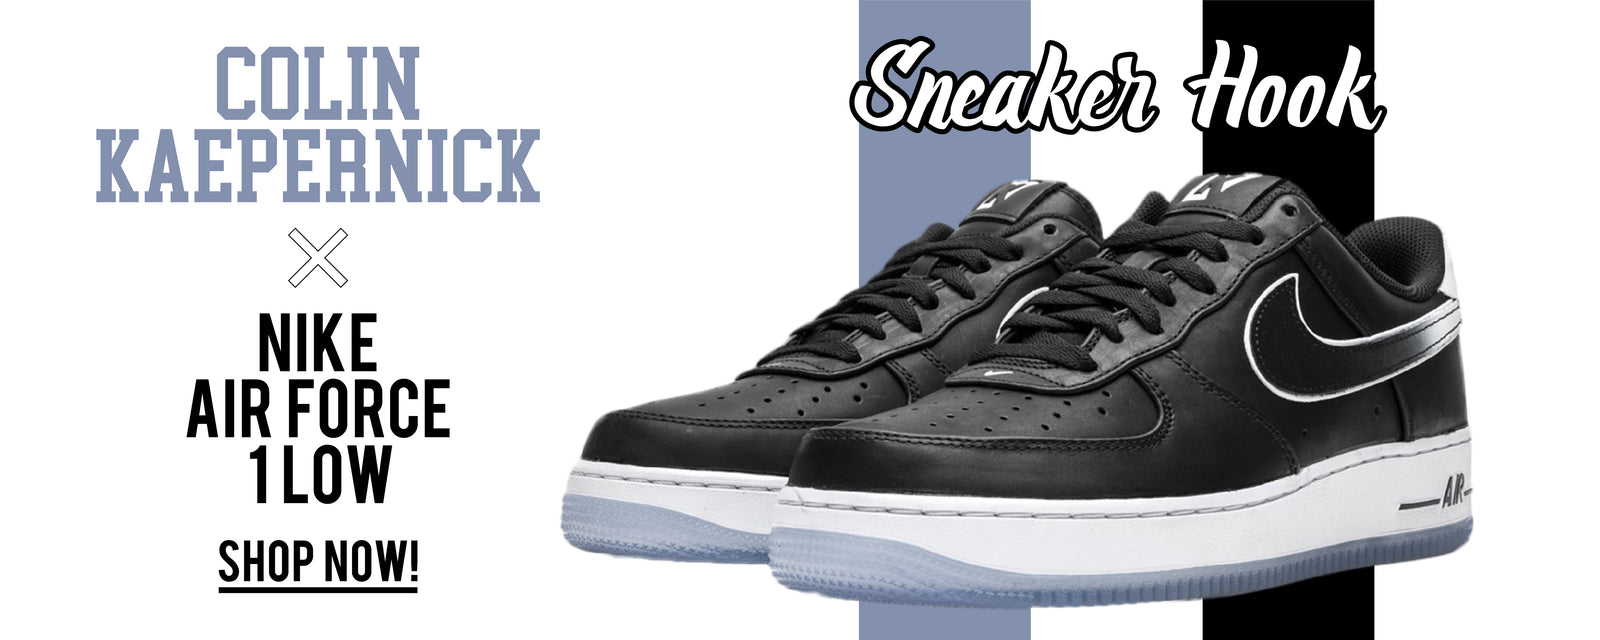 Colin Kaepernick X Nike Air Force 1 Low Sneaker Hook Up Clothing